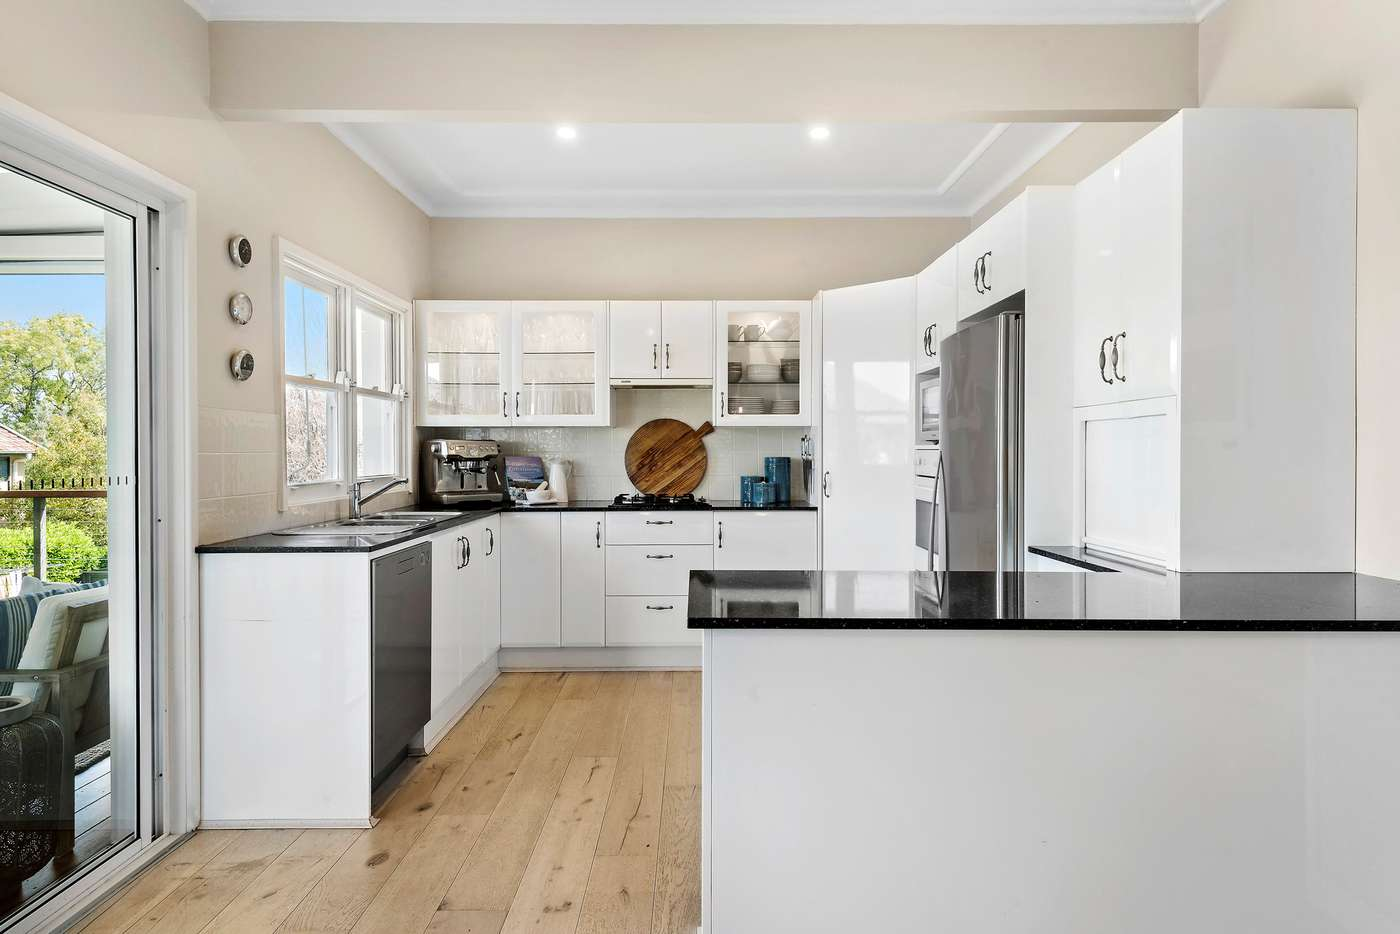 Fifth view of Homely house listing, 33 Grandview Grove, Seaforth NSW 2092